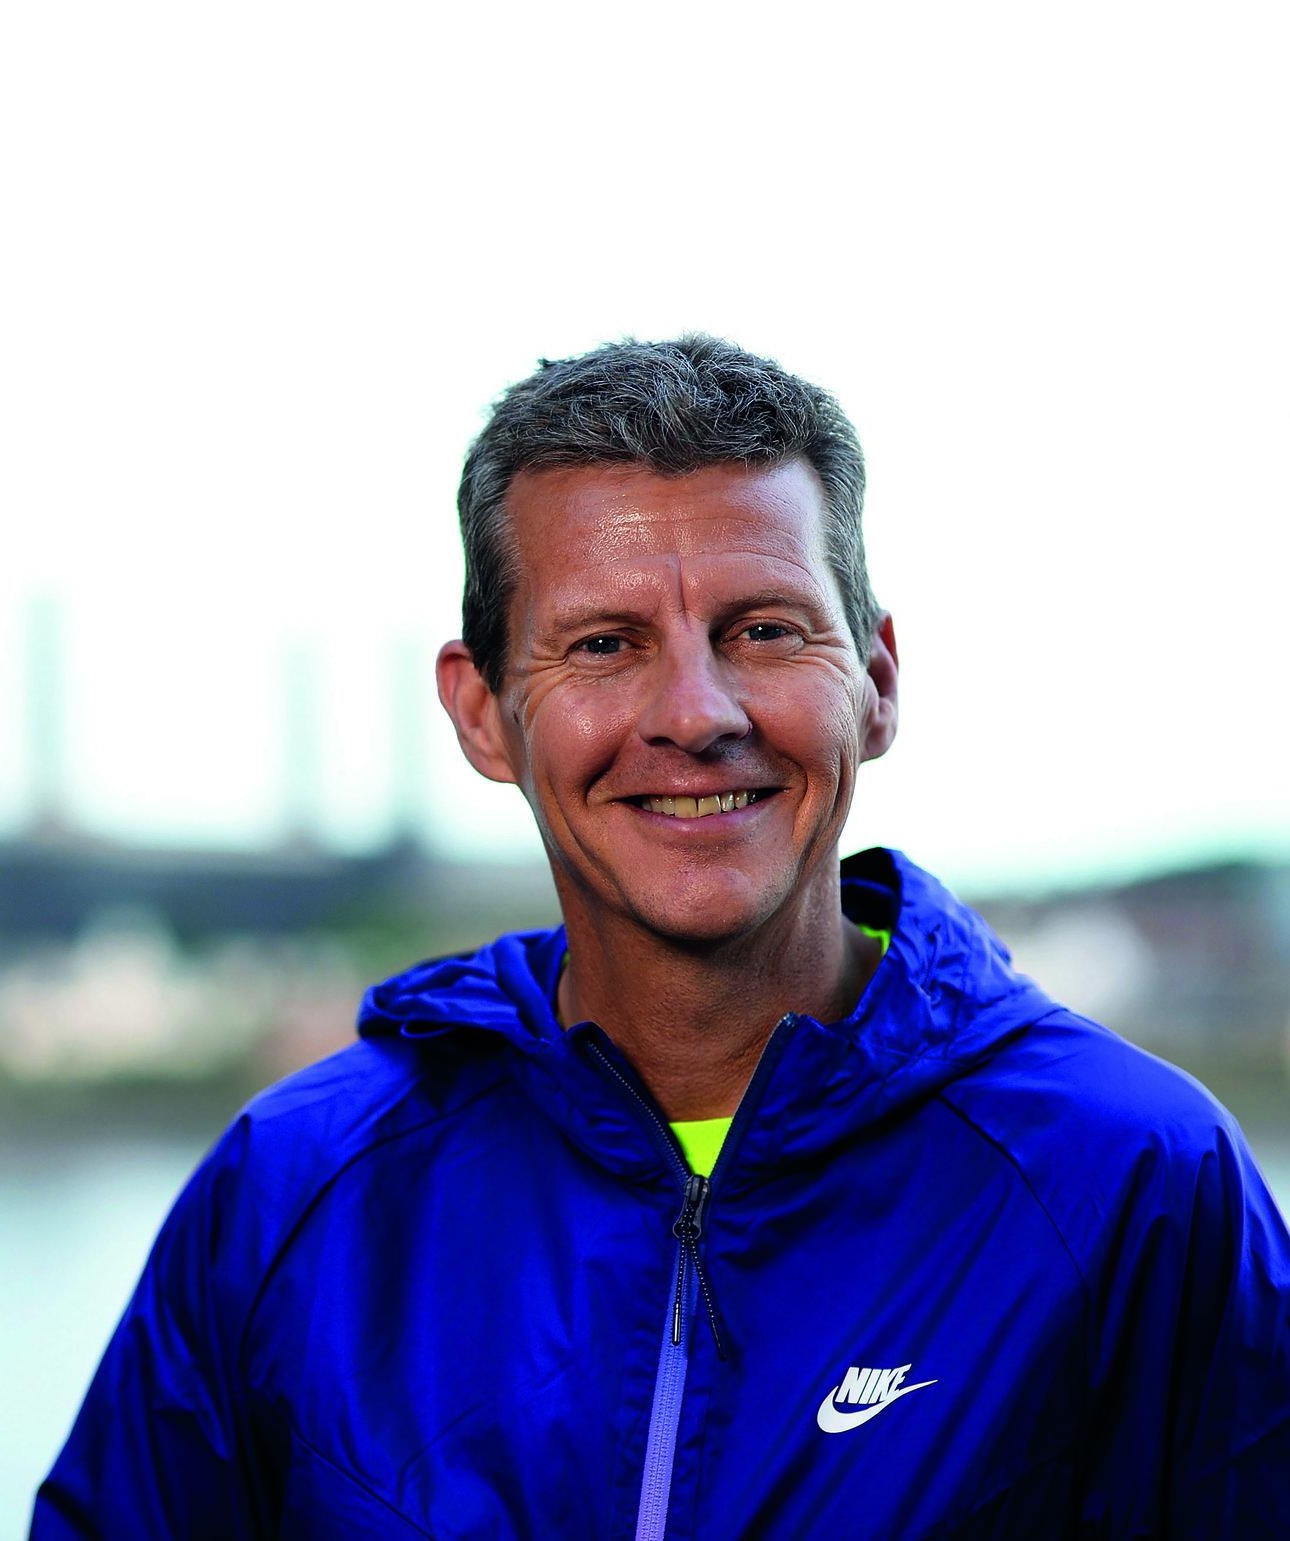 STEVE CRAM INTERVIEW FOR MEN'S RUNNING   The 'voice of athletics' on running lessons, the road to commentary and pre-race nerves